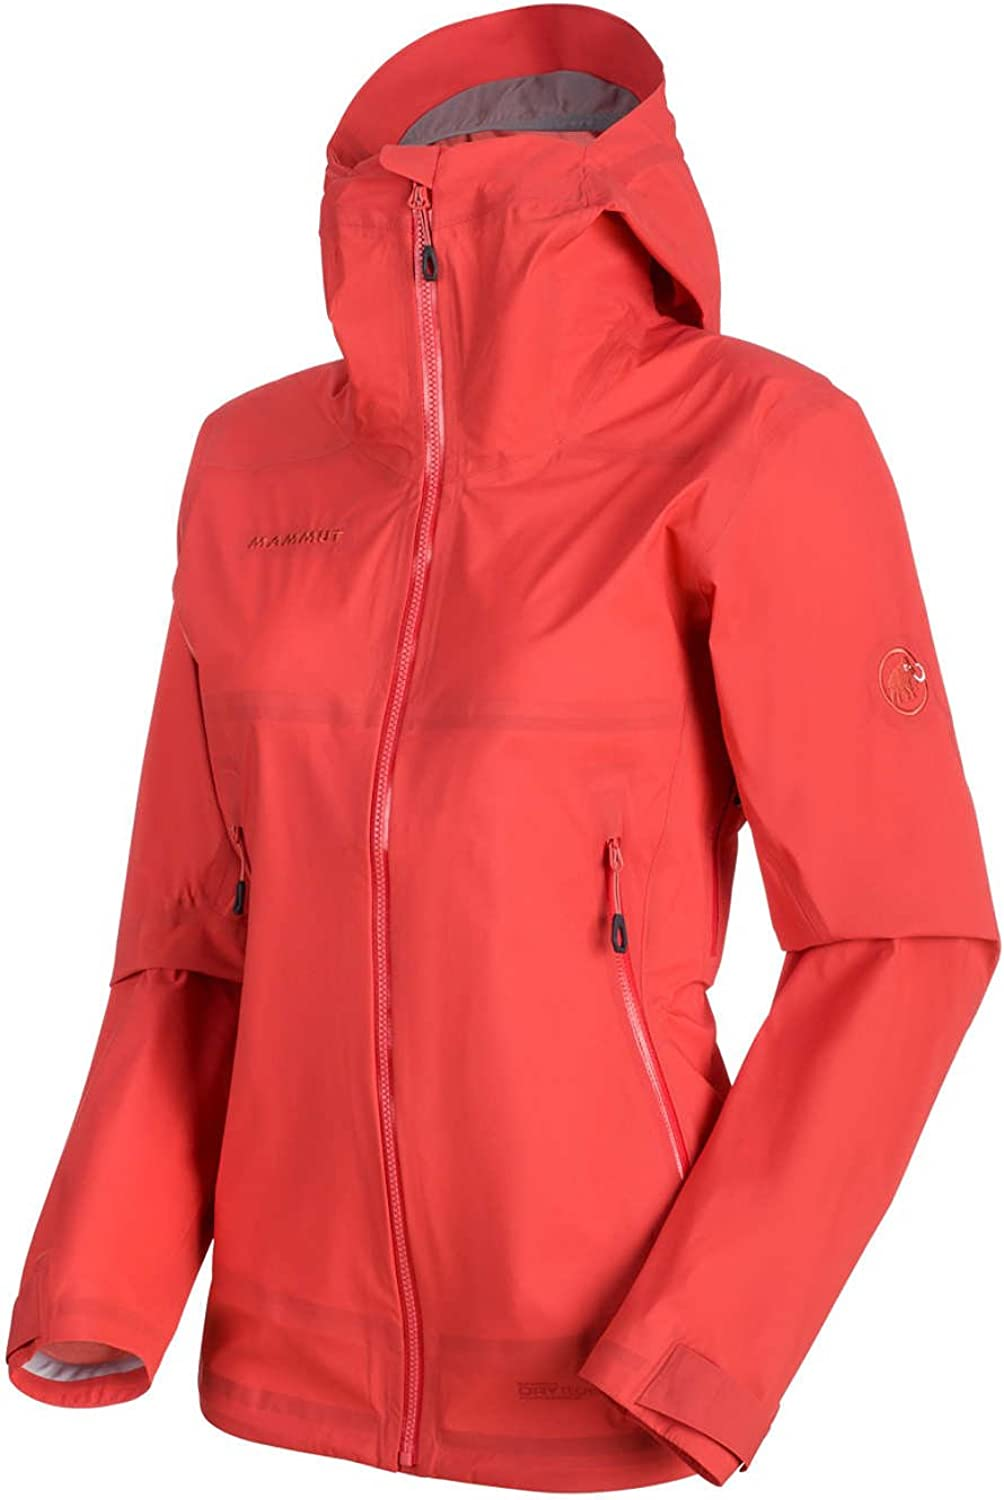 Mammut Masao Light Jacket Women red 2018 winter jacket